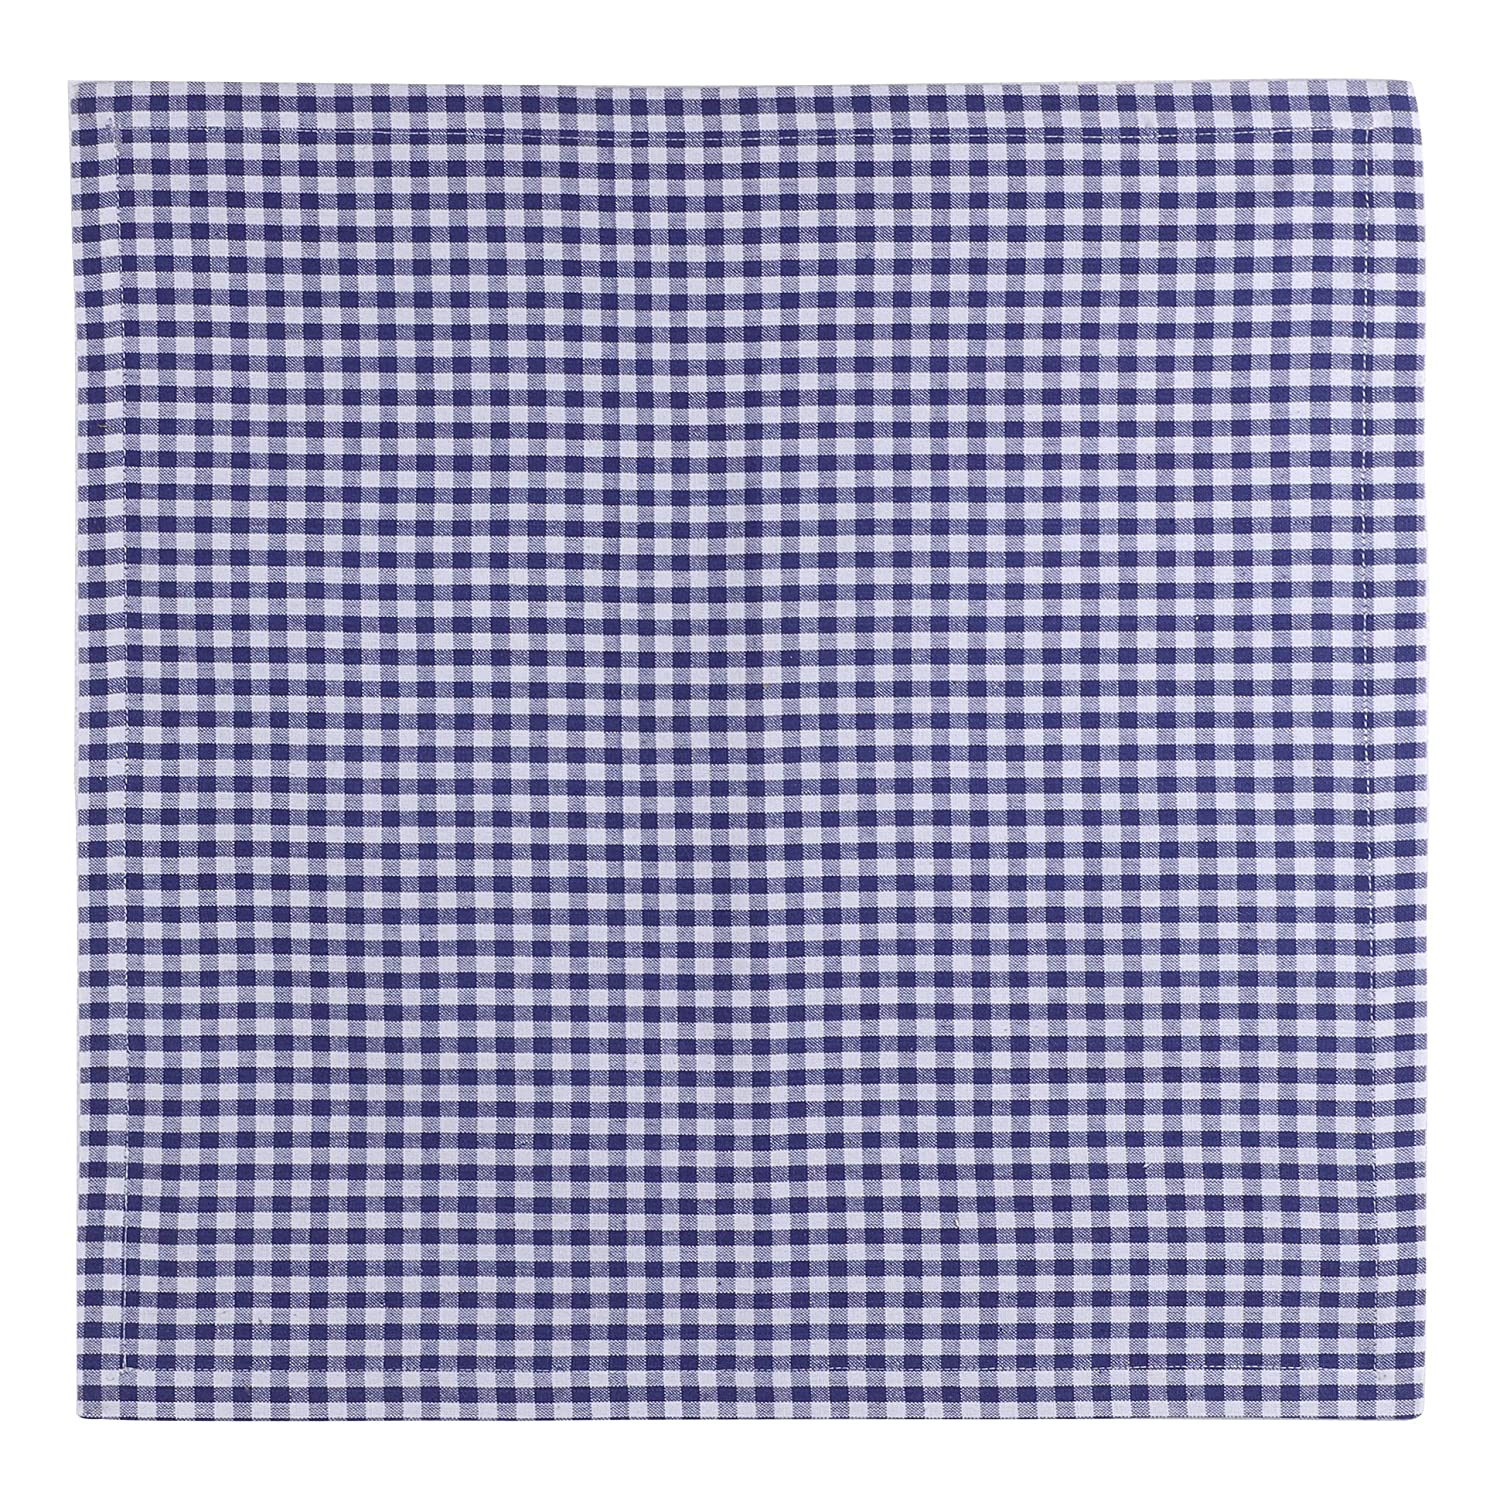 Oversized Black-White Heavy Quality Lint Free 50 x 50 CM Hotel Grade 100/% Cotton Yarn Dyed Machine washable SweetNeedle Gingham Checks Dinner Napkins 12 Pack Hemmed with Mitered corners